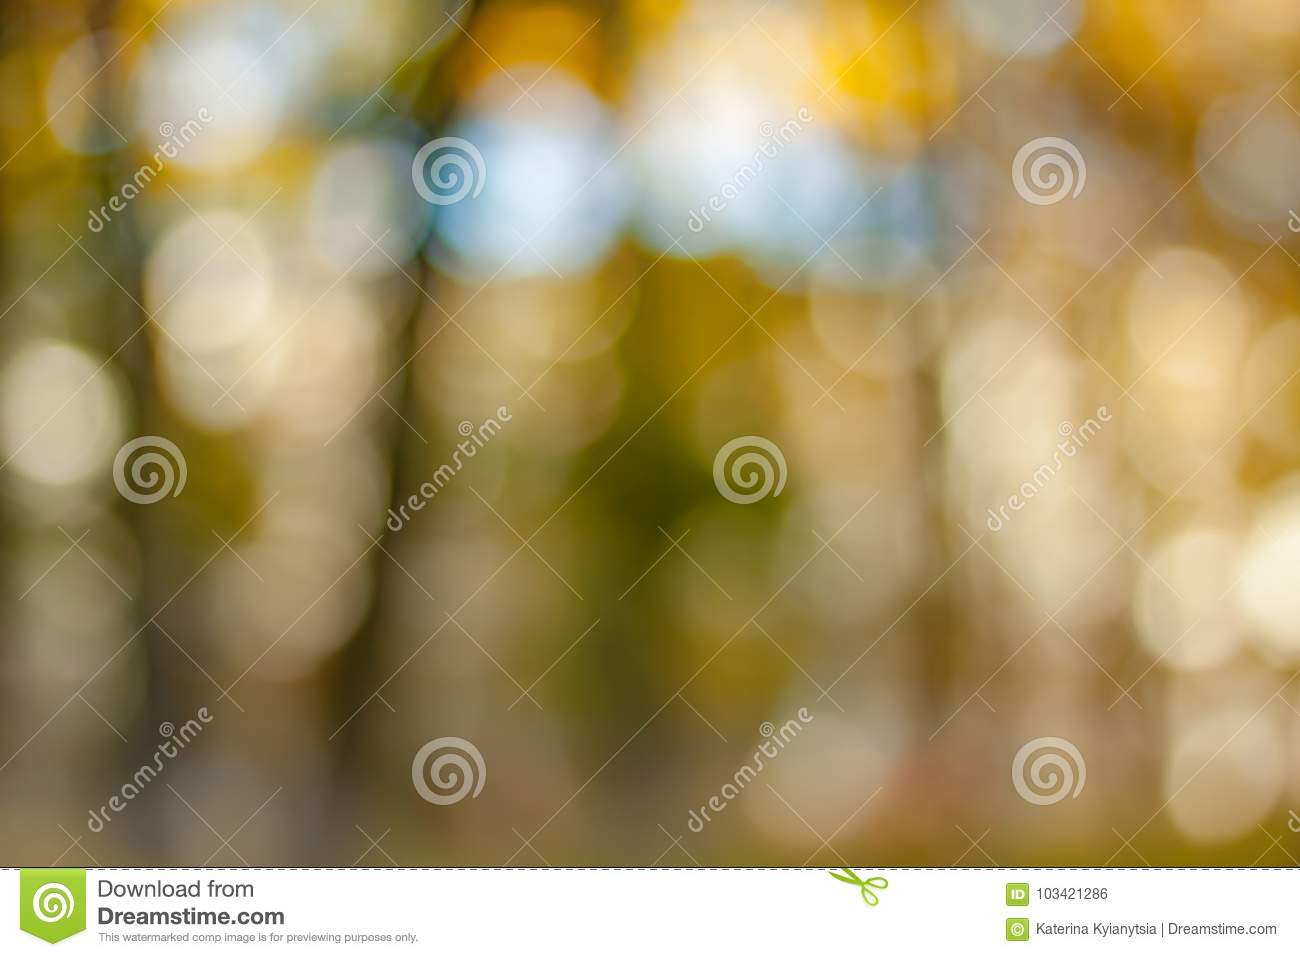 Blurry nature wallpaper. stock photo. Image of leaf ...